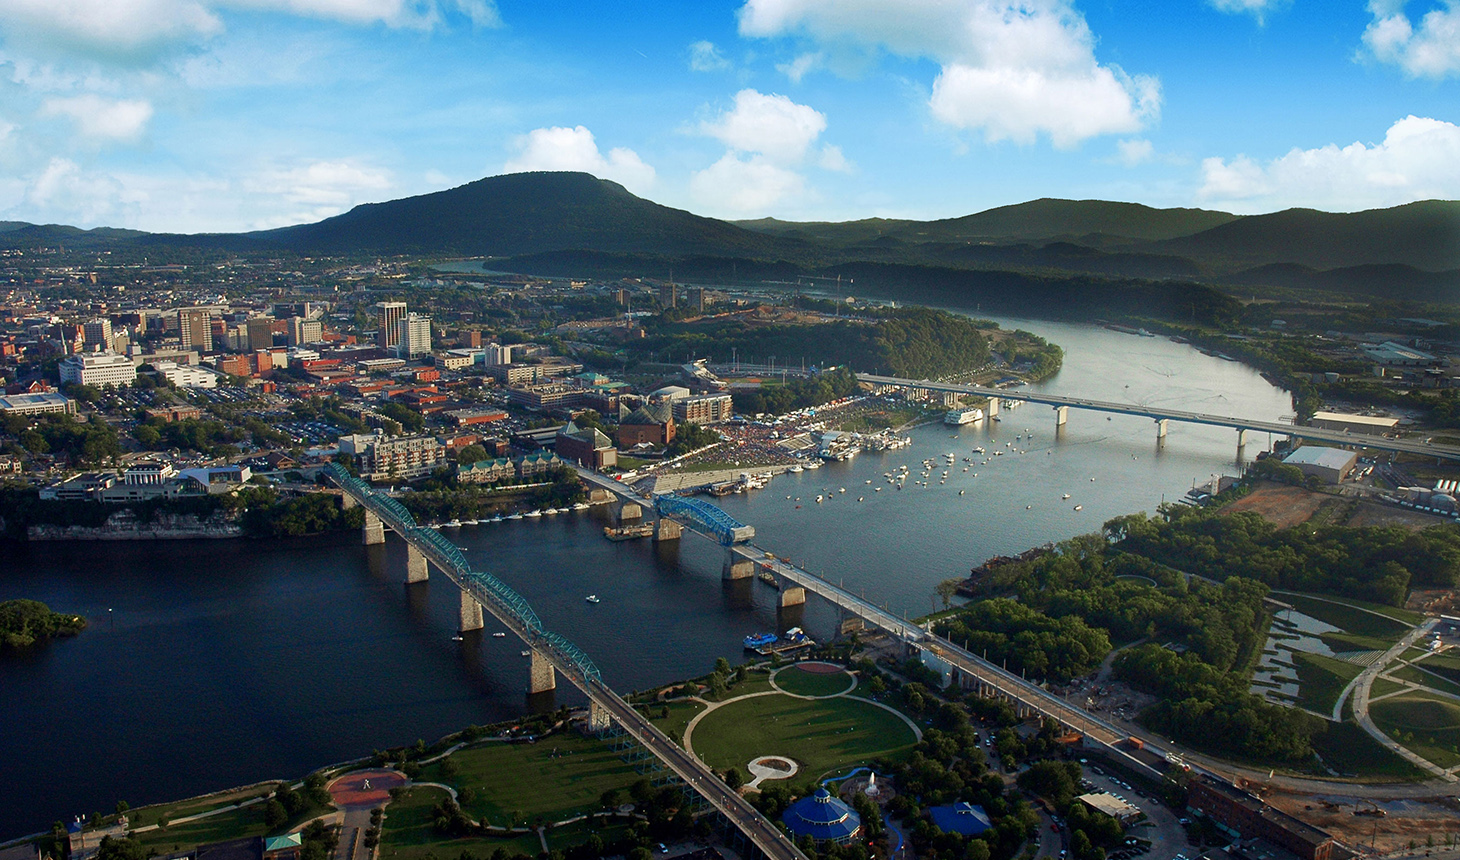 Chattanooga's Riverfront during the annual Riverbend Festival ph. Chattanooga Convention Visitors Bureau